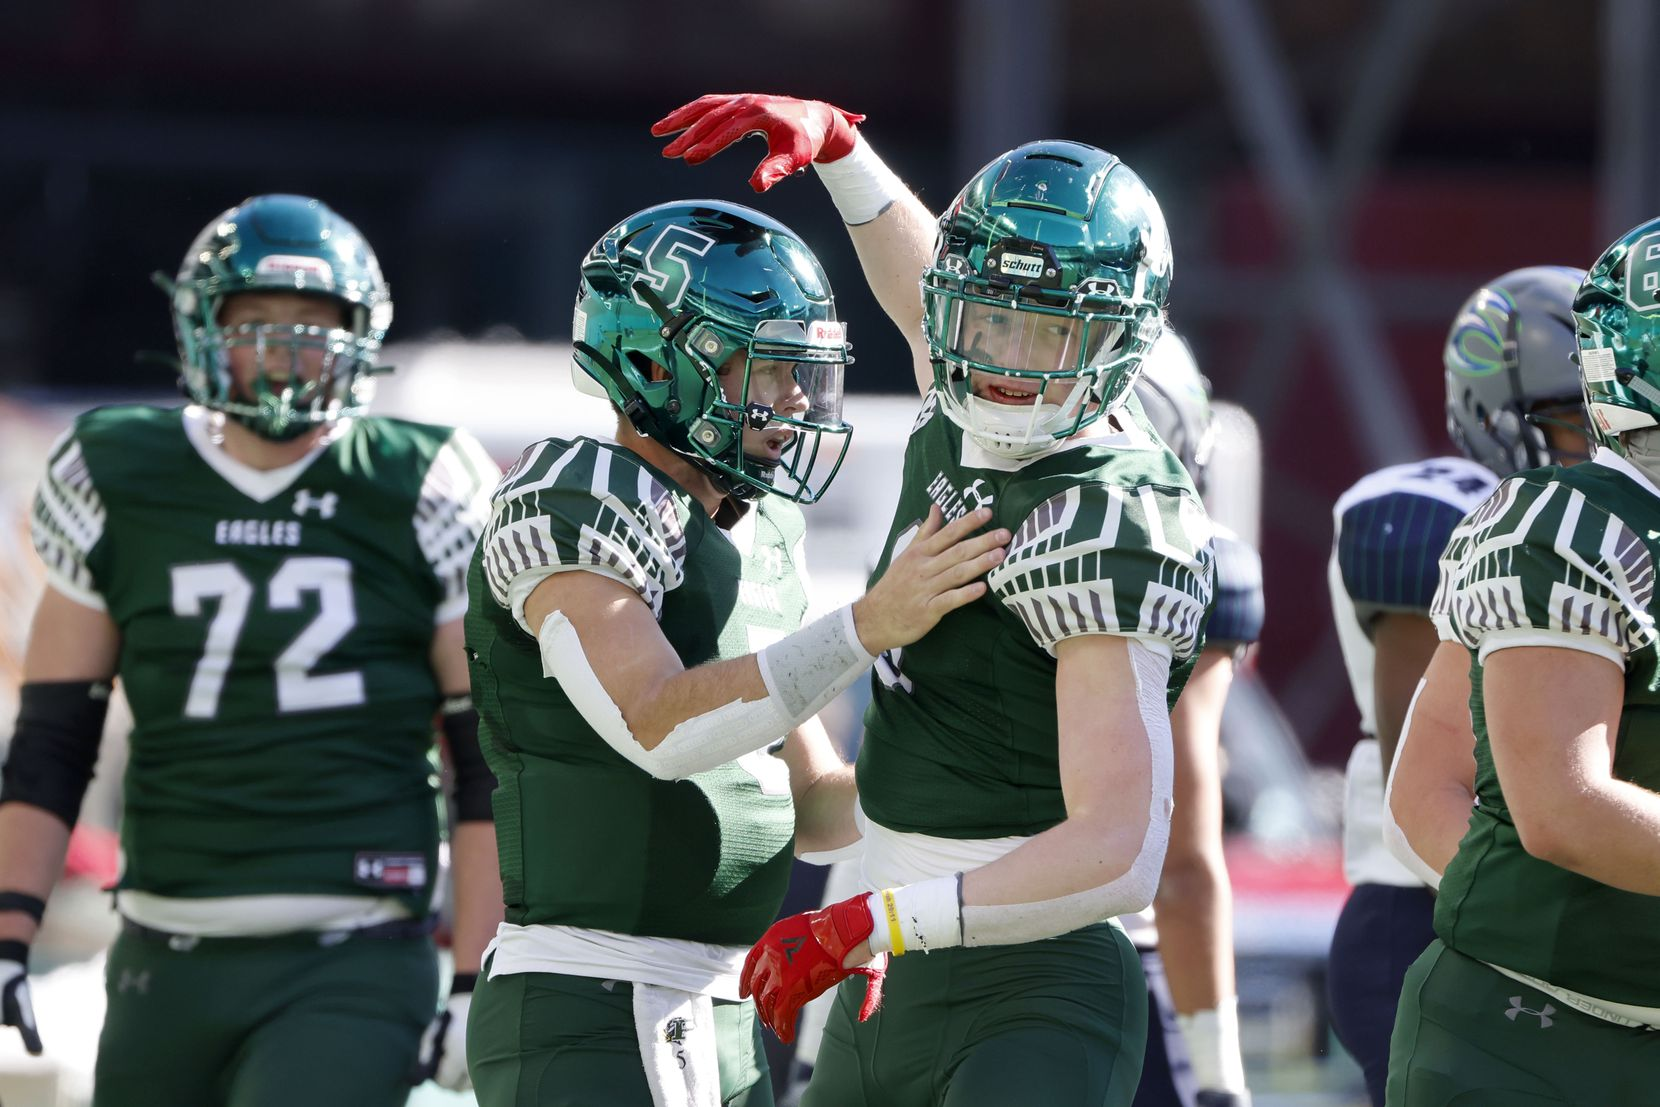 Prosper quarterback Jackson Berry (5), left, celebrates his rushing touchdown against Northwest Eaton with tight end Cameron Harpole (9) during the Class 6A Division II Region I semifinal high school football playoff game on Dec. 26, 2020. (Michael Ainsworth/Special Contributor)